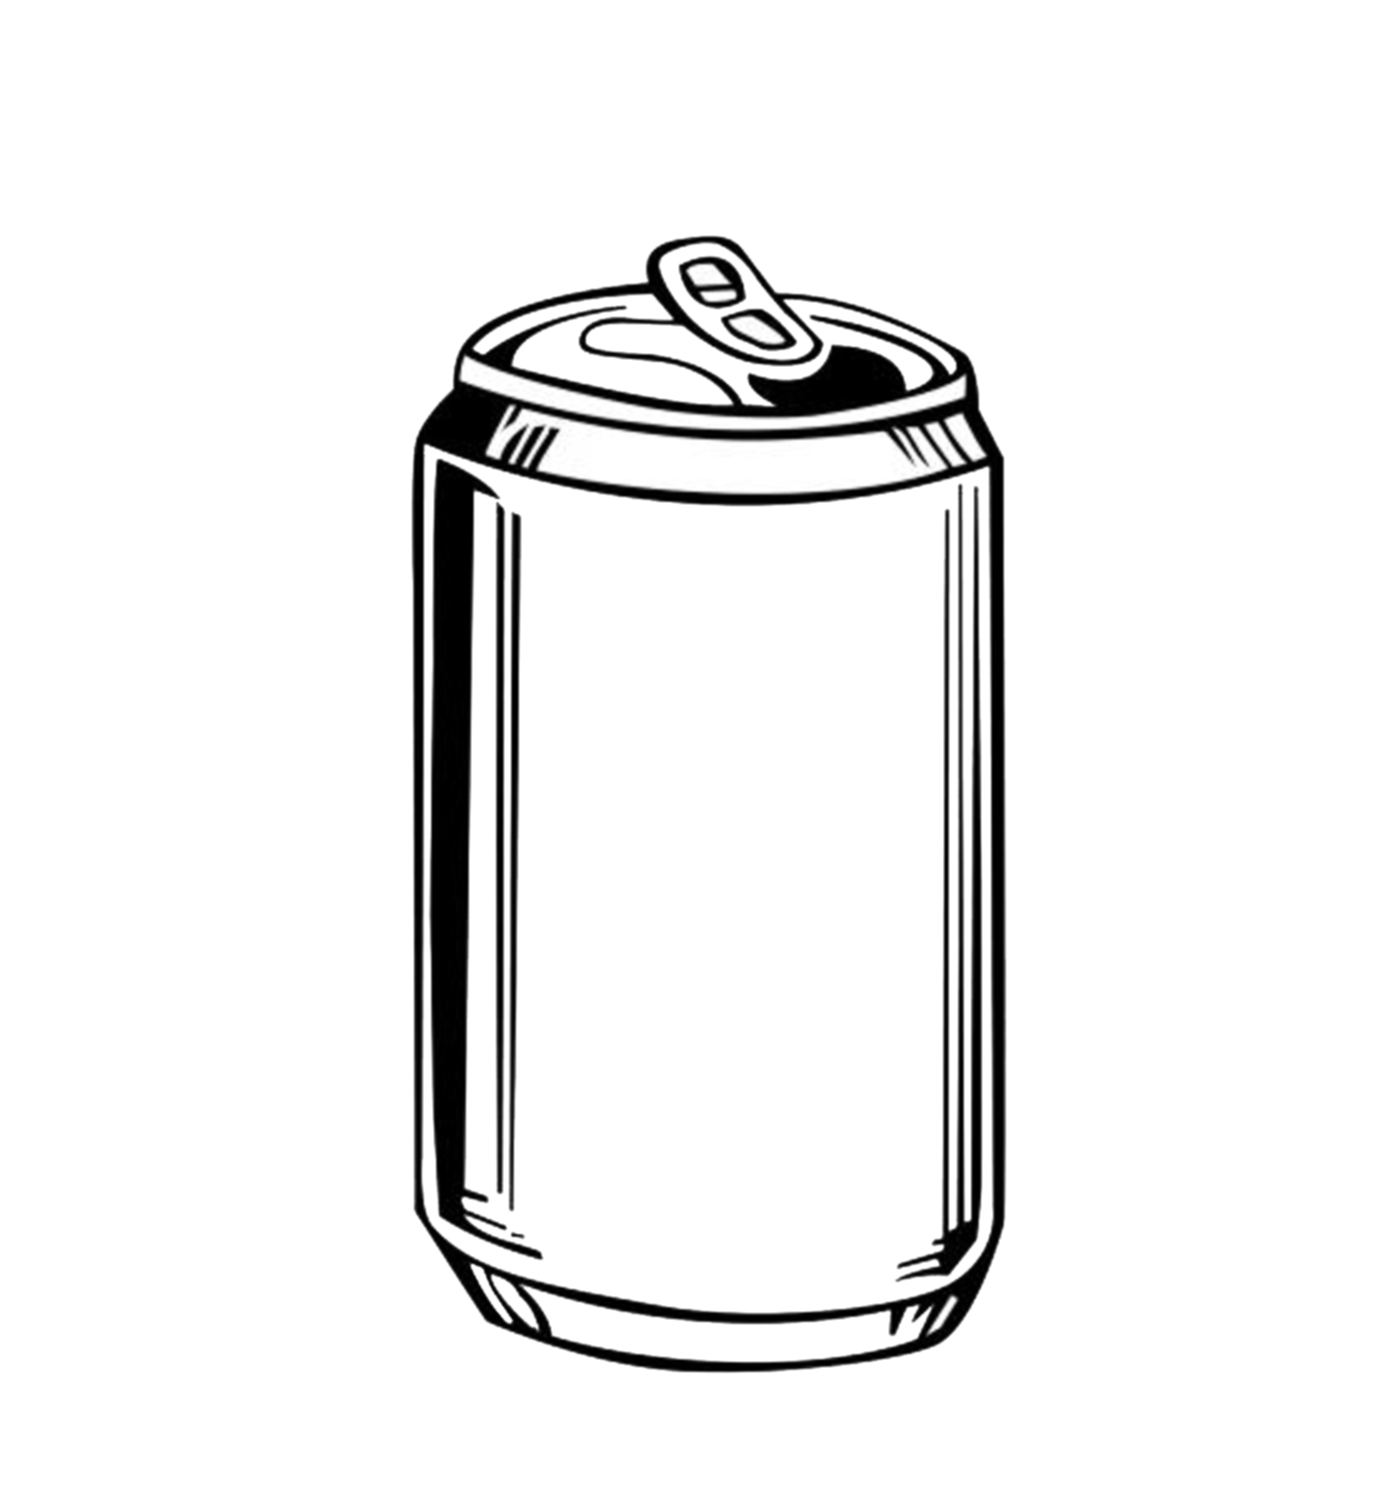 Beer Can Outline - ClipArt Best - ClipArt Best